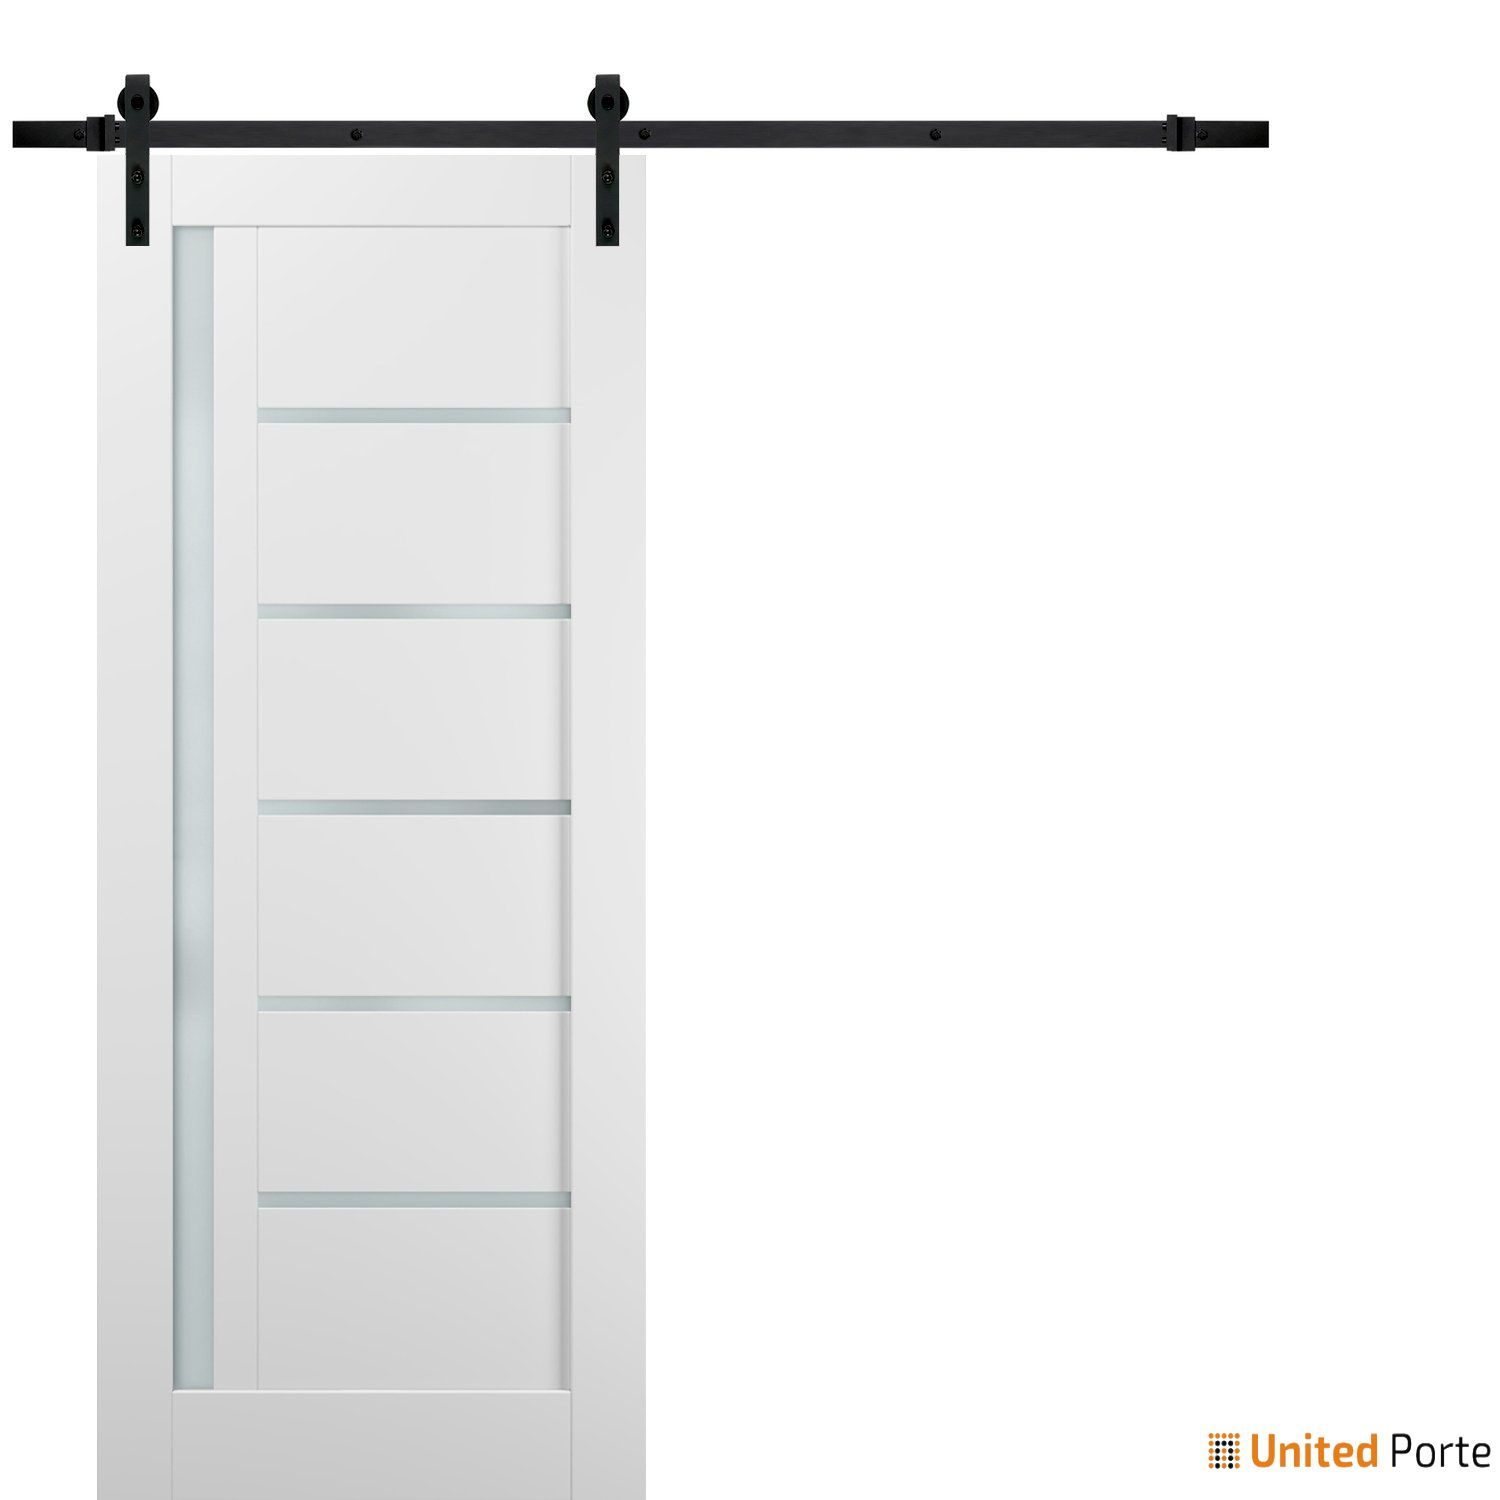 Quadro 4088 White Silk with Frosted Opaque Glass Sliding Barn Door with Black Hardware   Lite Wooden Solid Panel Interior Barn Doors